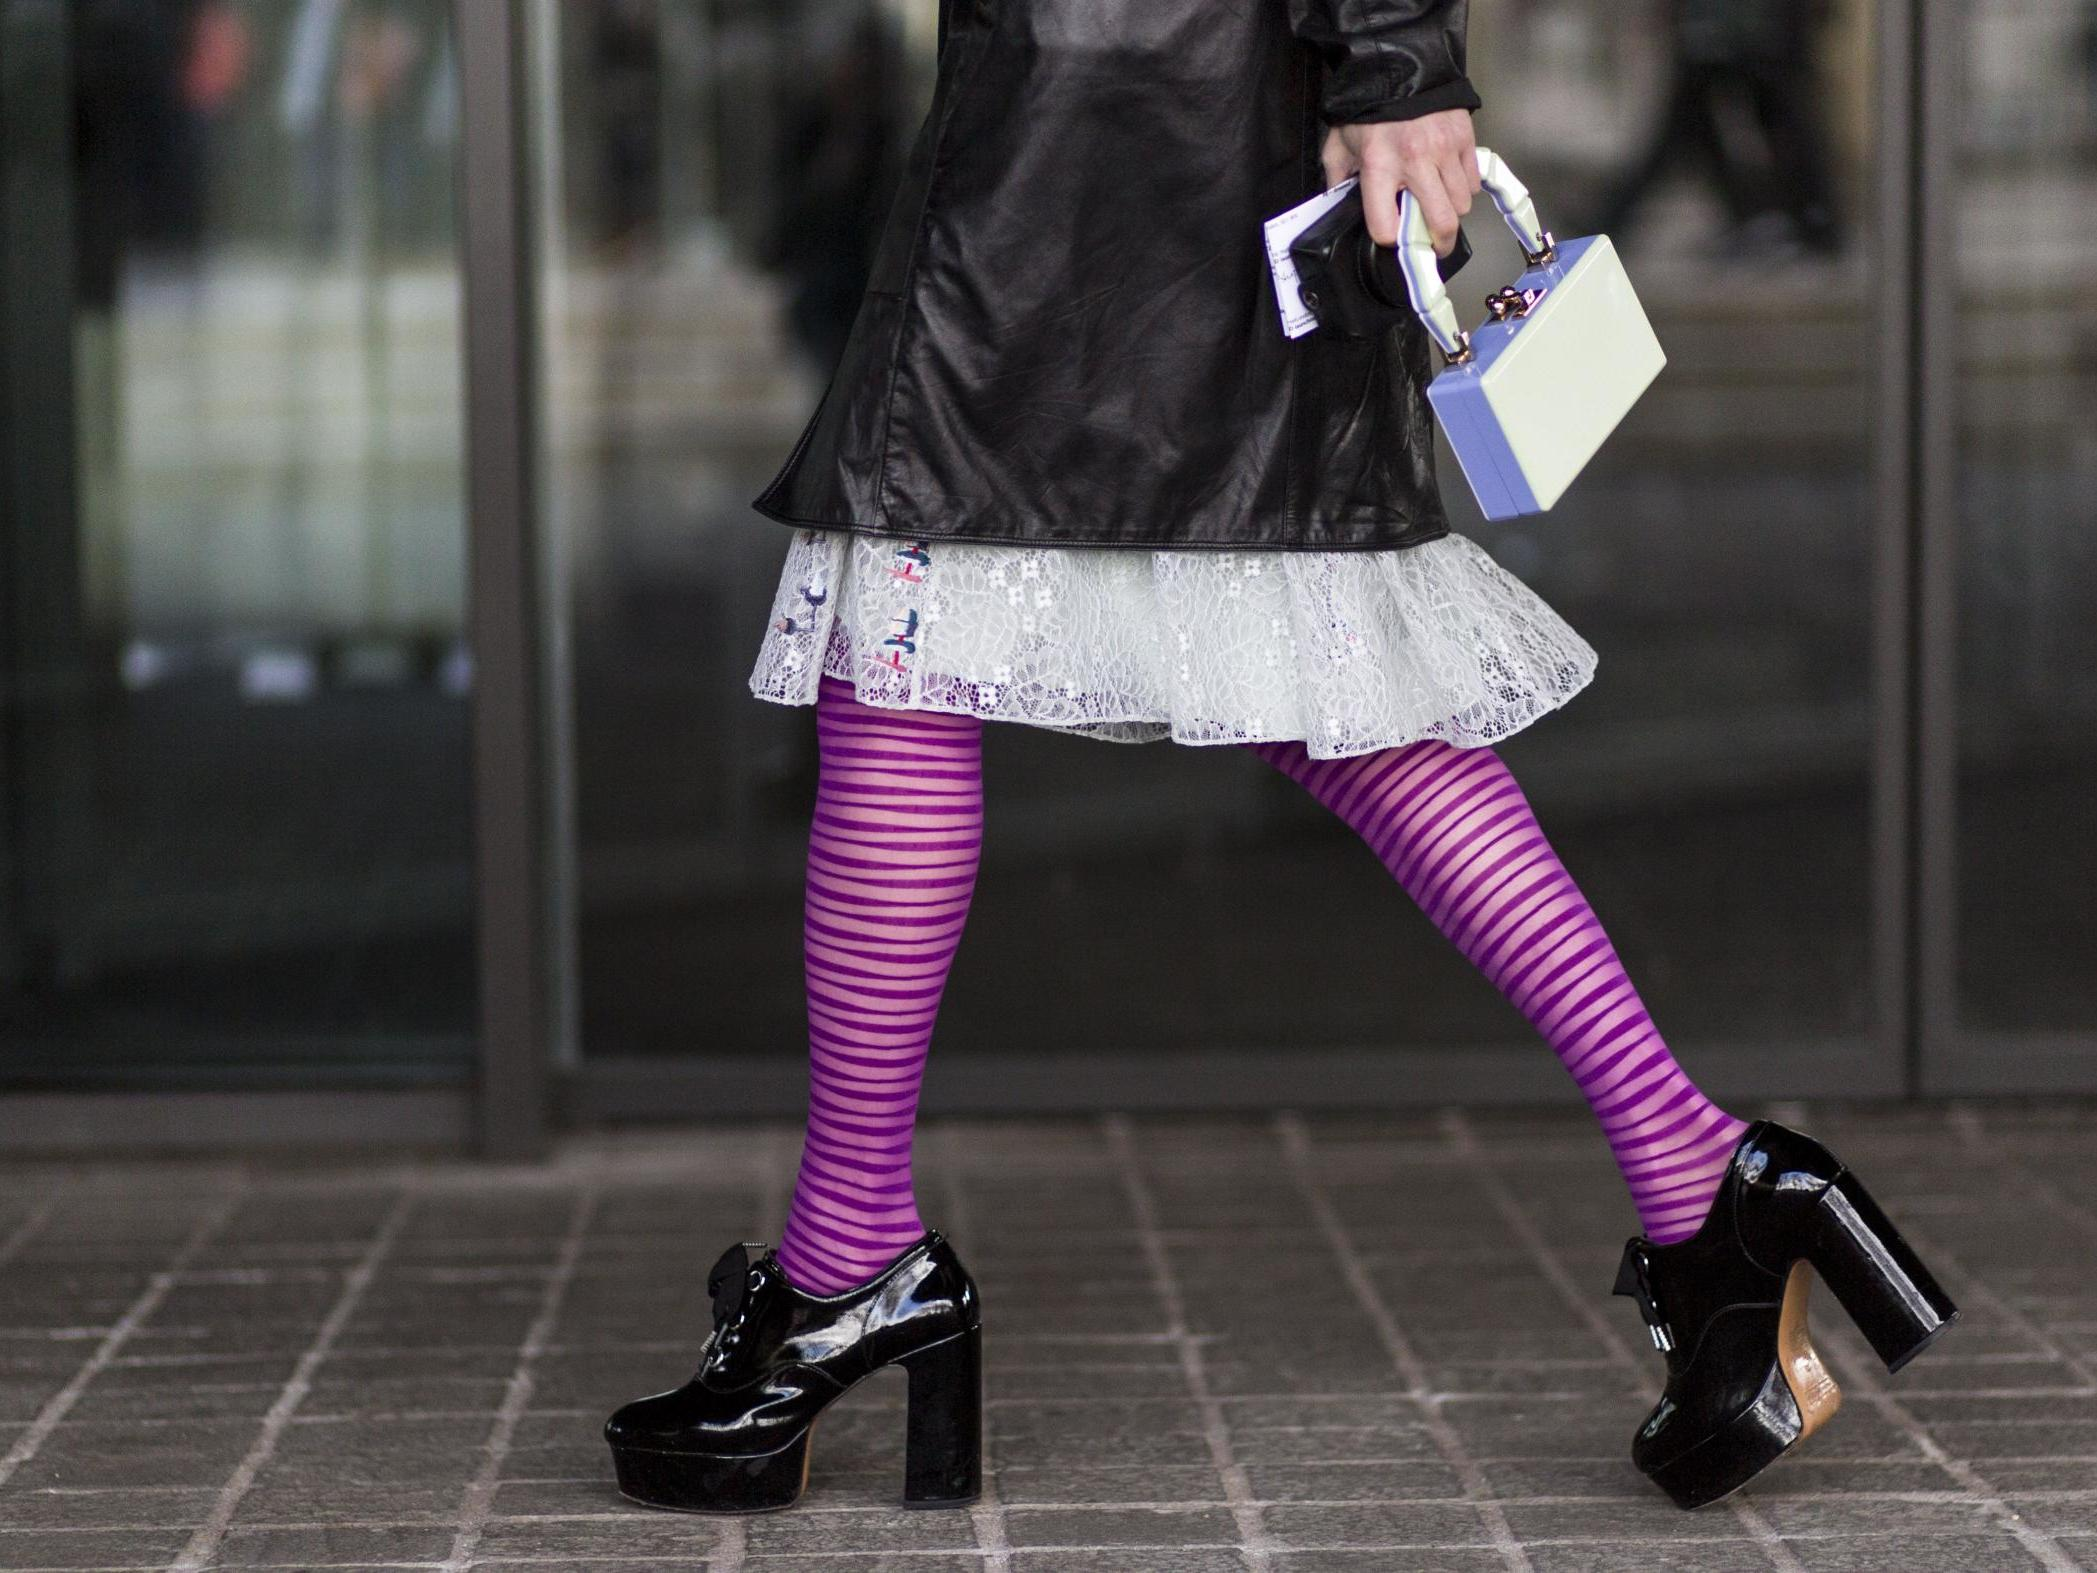 The revolution of tights: How hosiery is becoming trendy and green